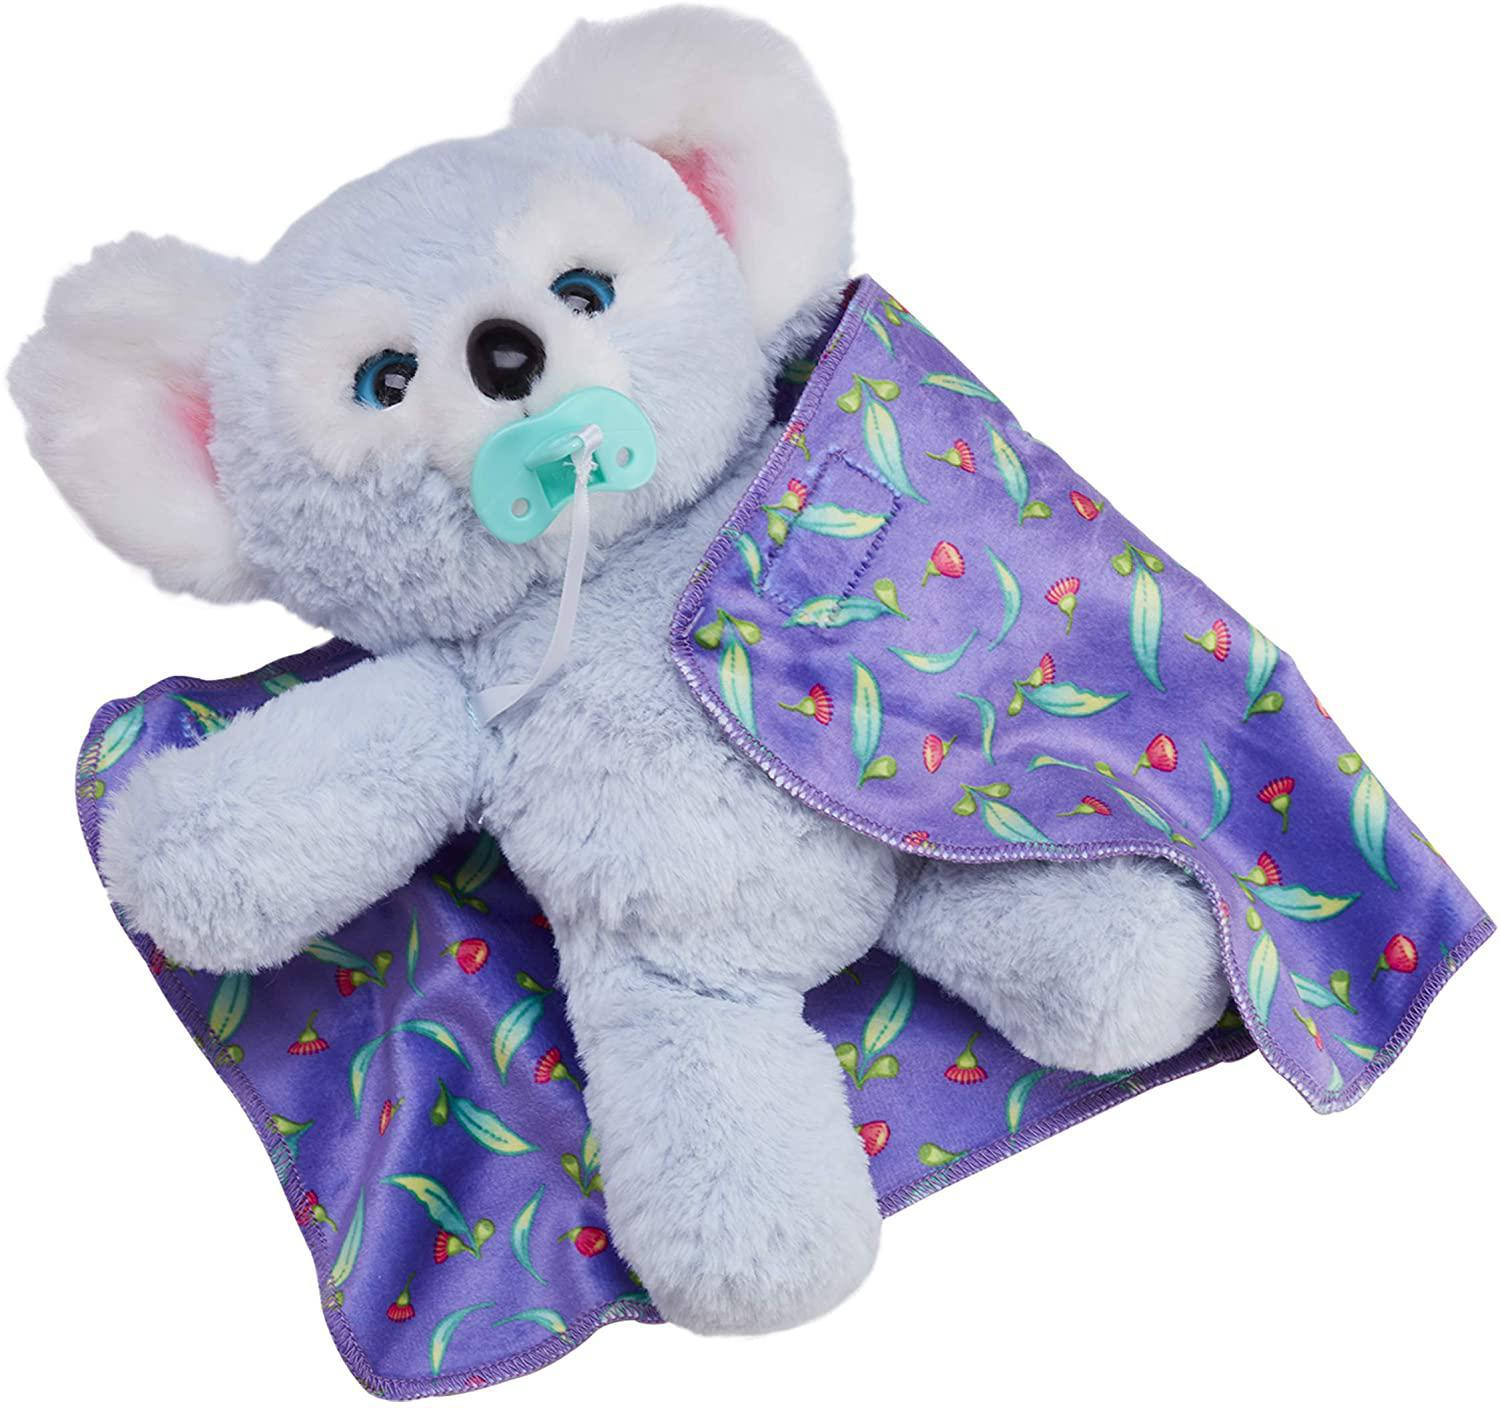 with Over 25 Sounds and Reactions! collector Little Live Cozy Dozys KIP The Koala The Cuddly Koala Bear That is so Playful and The Perfect Bedtime Buddy